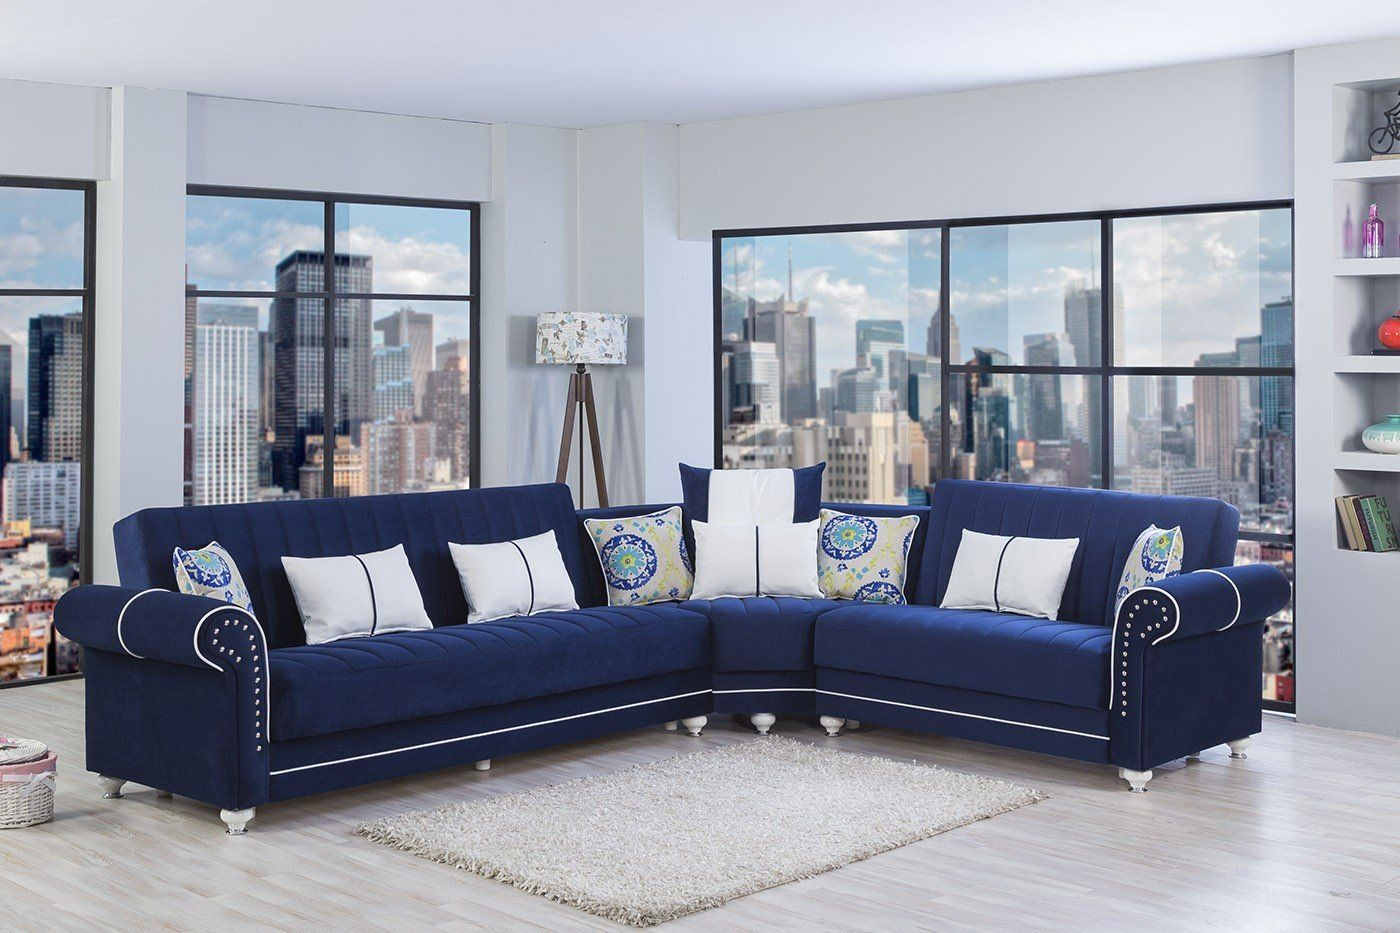 78 Reference Of Royal Blue Sofa Living Room Blue Sofa Living Blue Sofas Living Room Blue Chairs Living Room